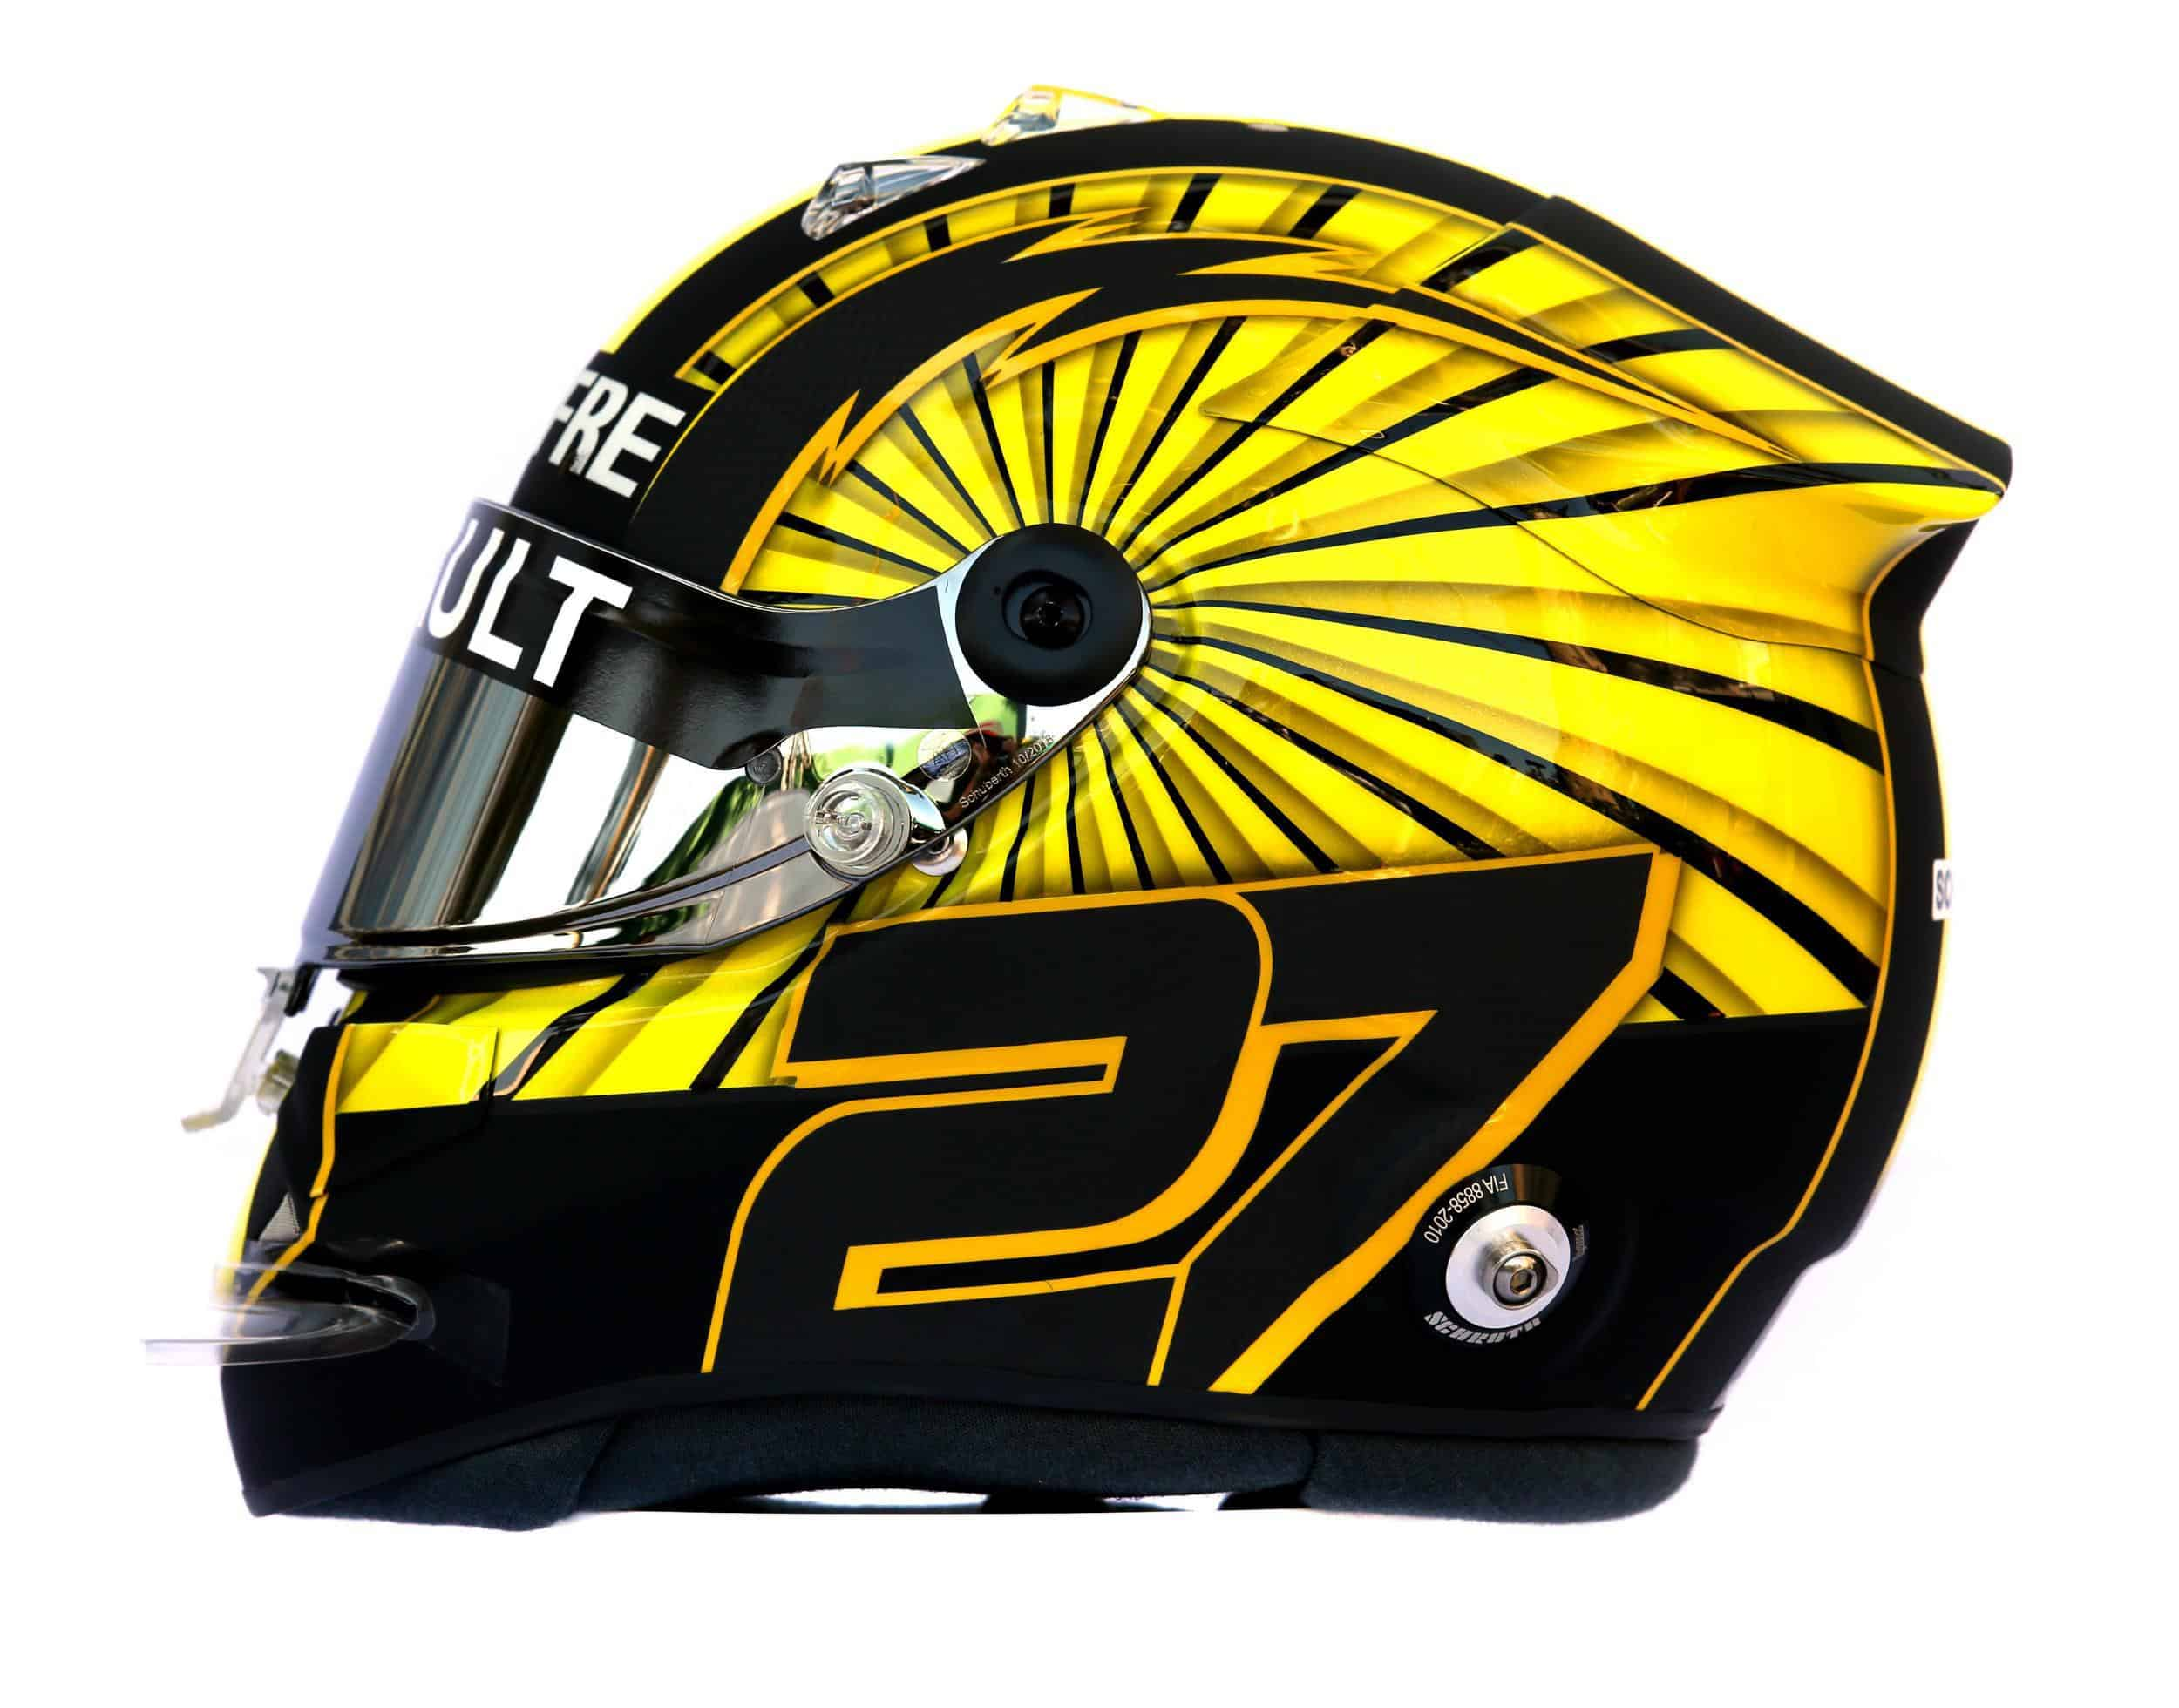 2019 F1 Nico Hulkenberg Renault helmet left side Photo Renault Edited by MAXF1net